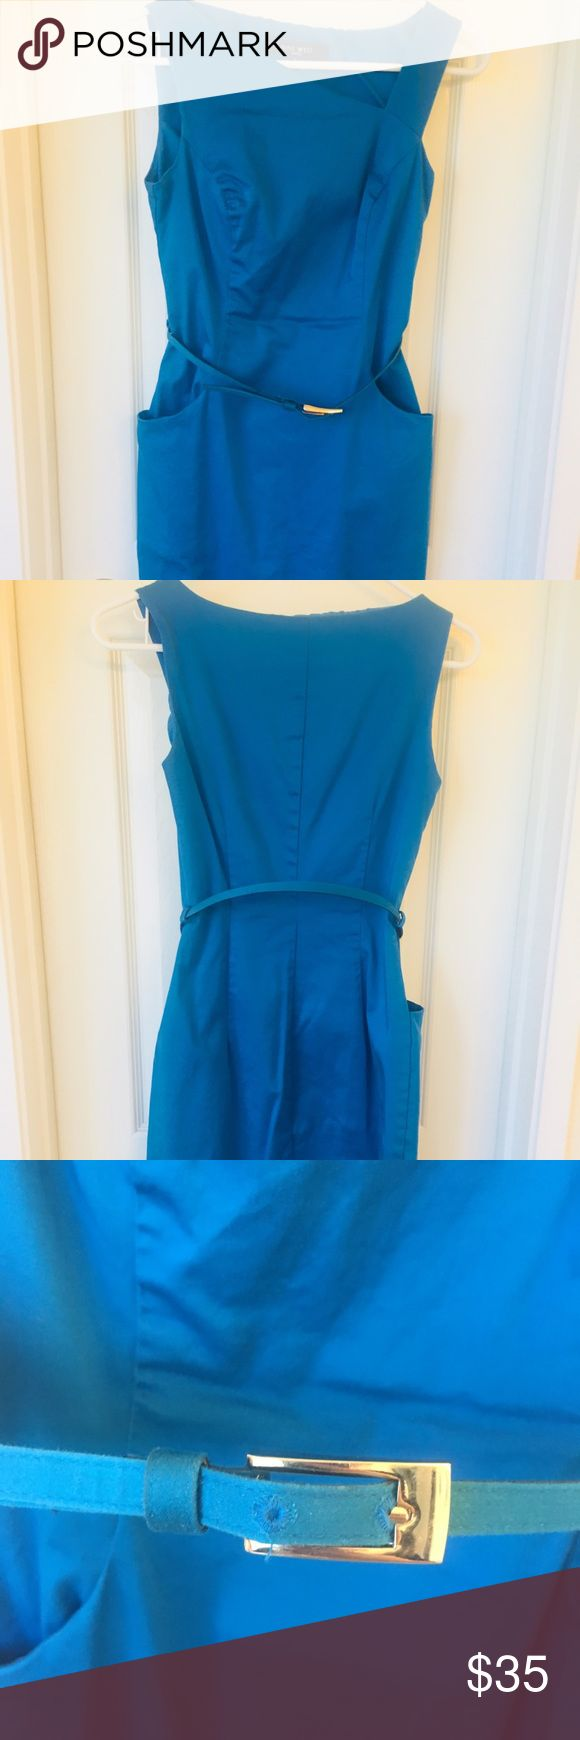 Teal Nine West belted dress Beautiful, vibrant colored teal belted dress. Mid length perfect for the office. Figure flattering. Nice spring/summer color. Worn once. Nine West Dresses Midi